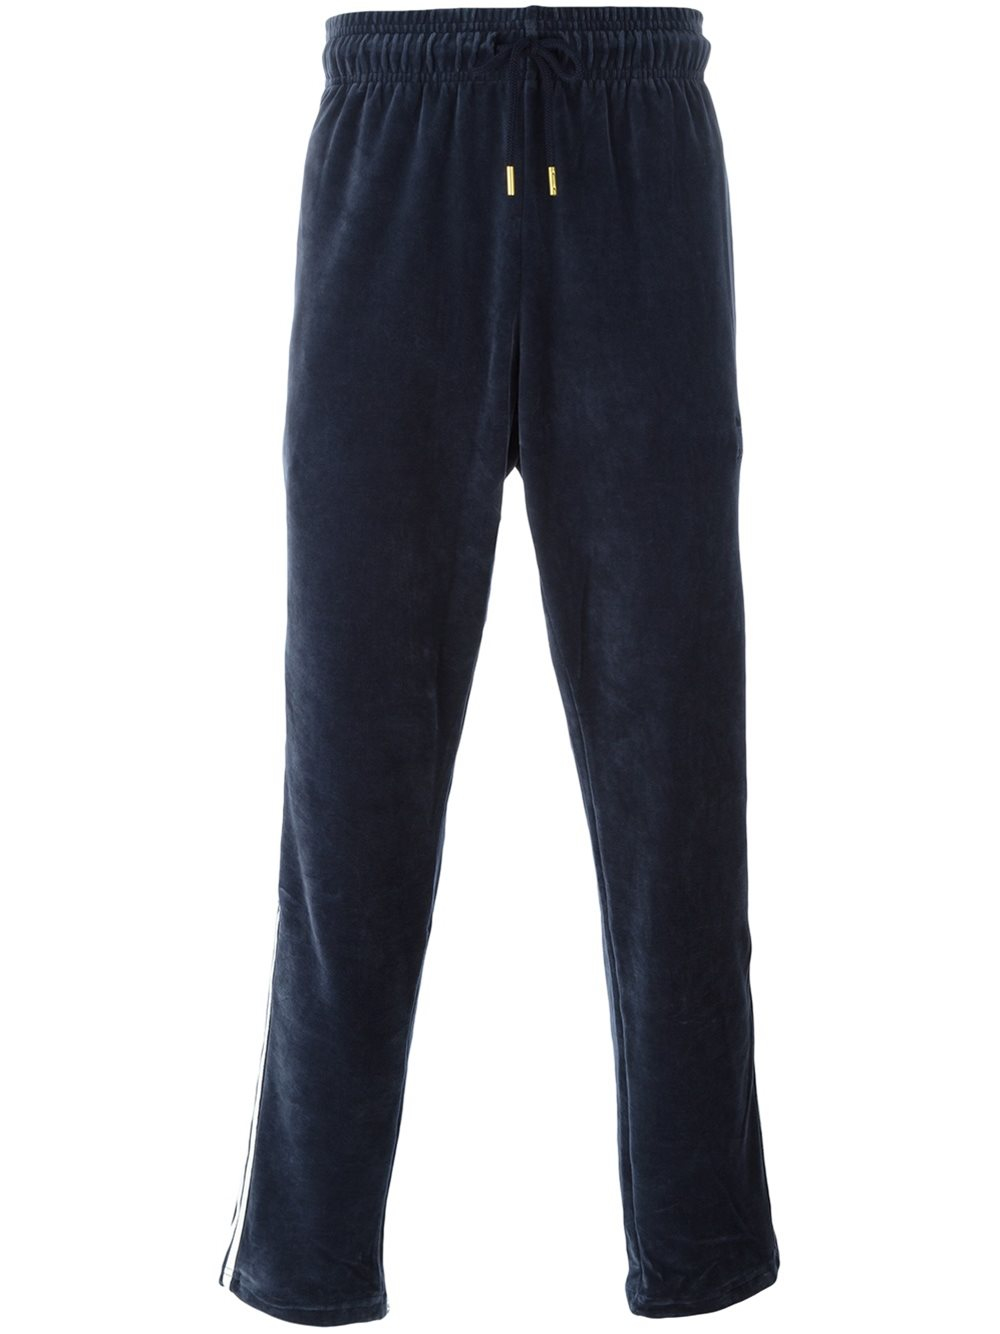 adidas originals velour track pants in blue for men lyst